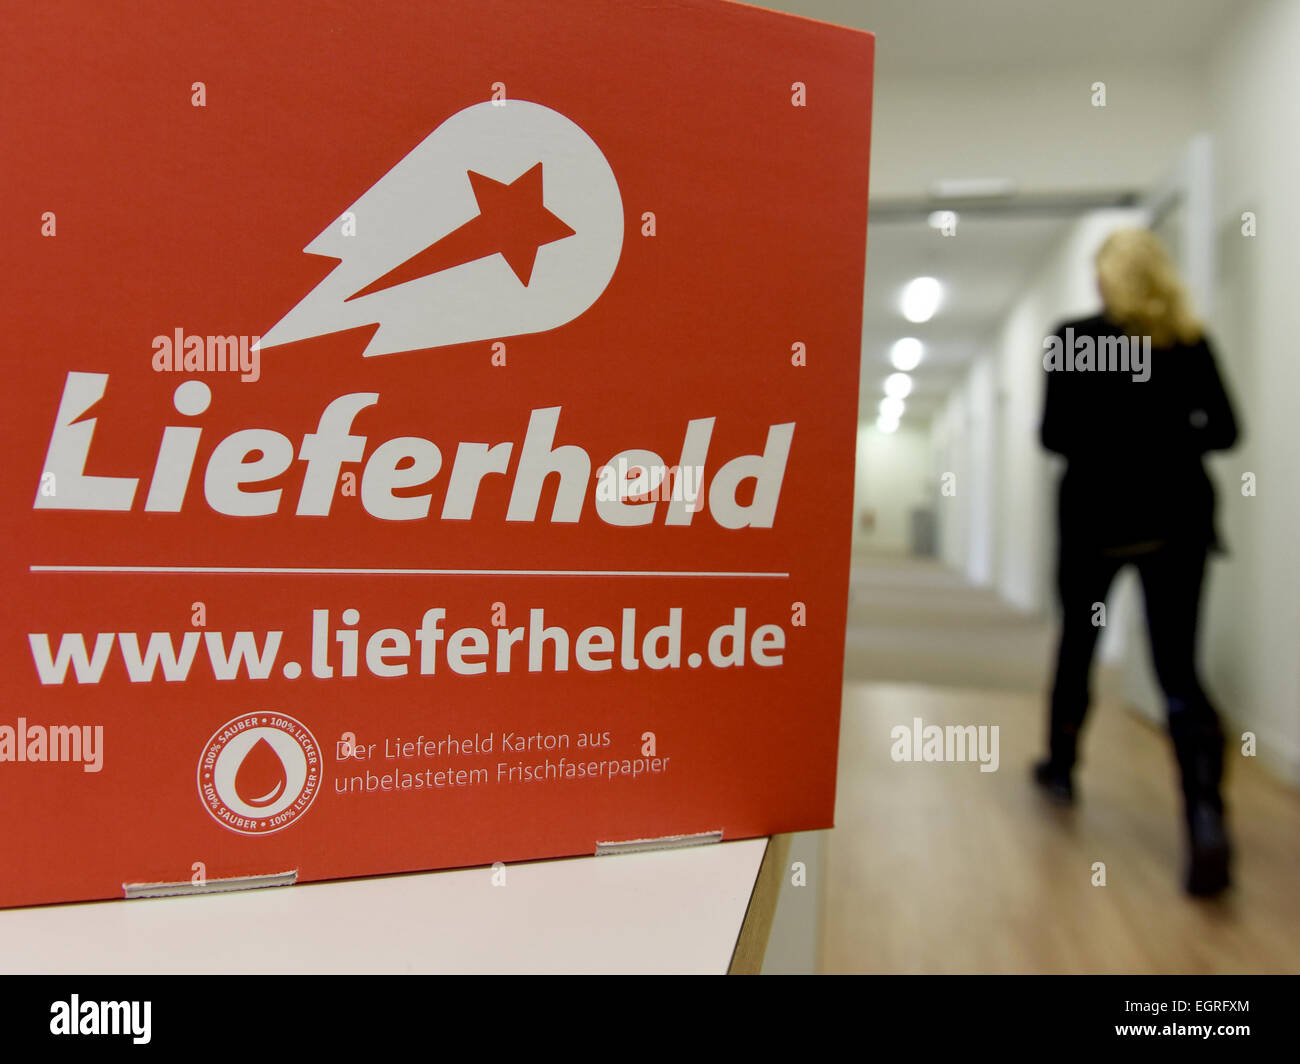 Berlin, Germany. 24th Feb, 2015. The logo of online order and delivery platform 'Lieferheld' is on display - Stock Image